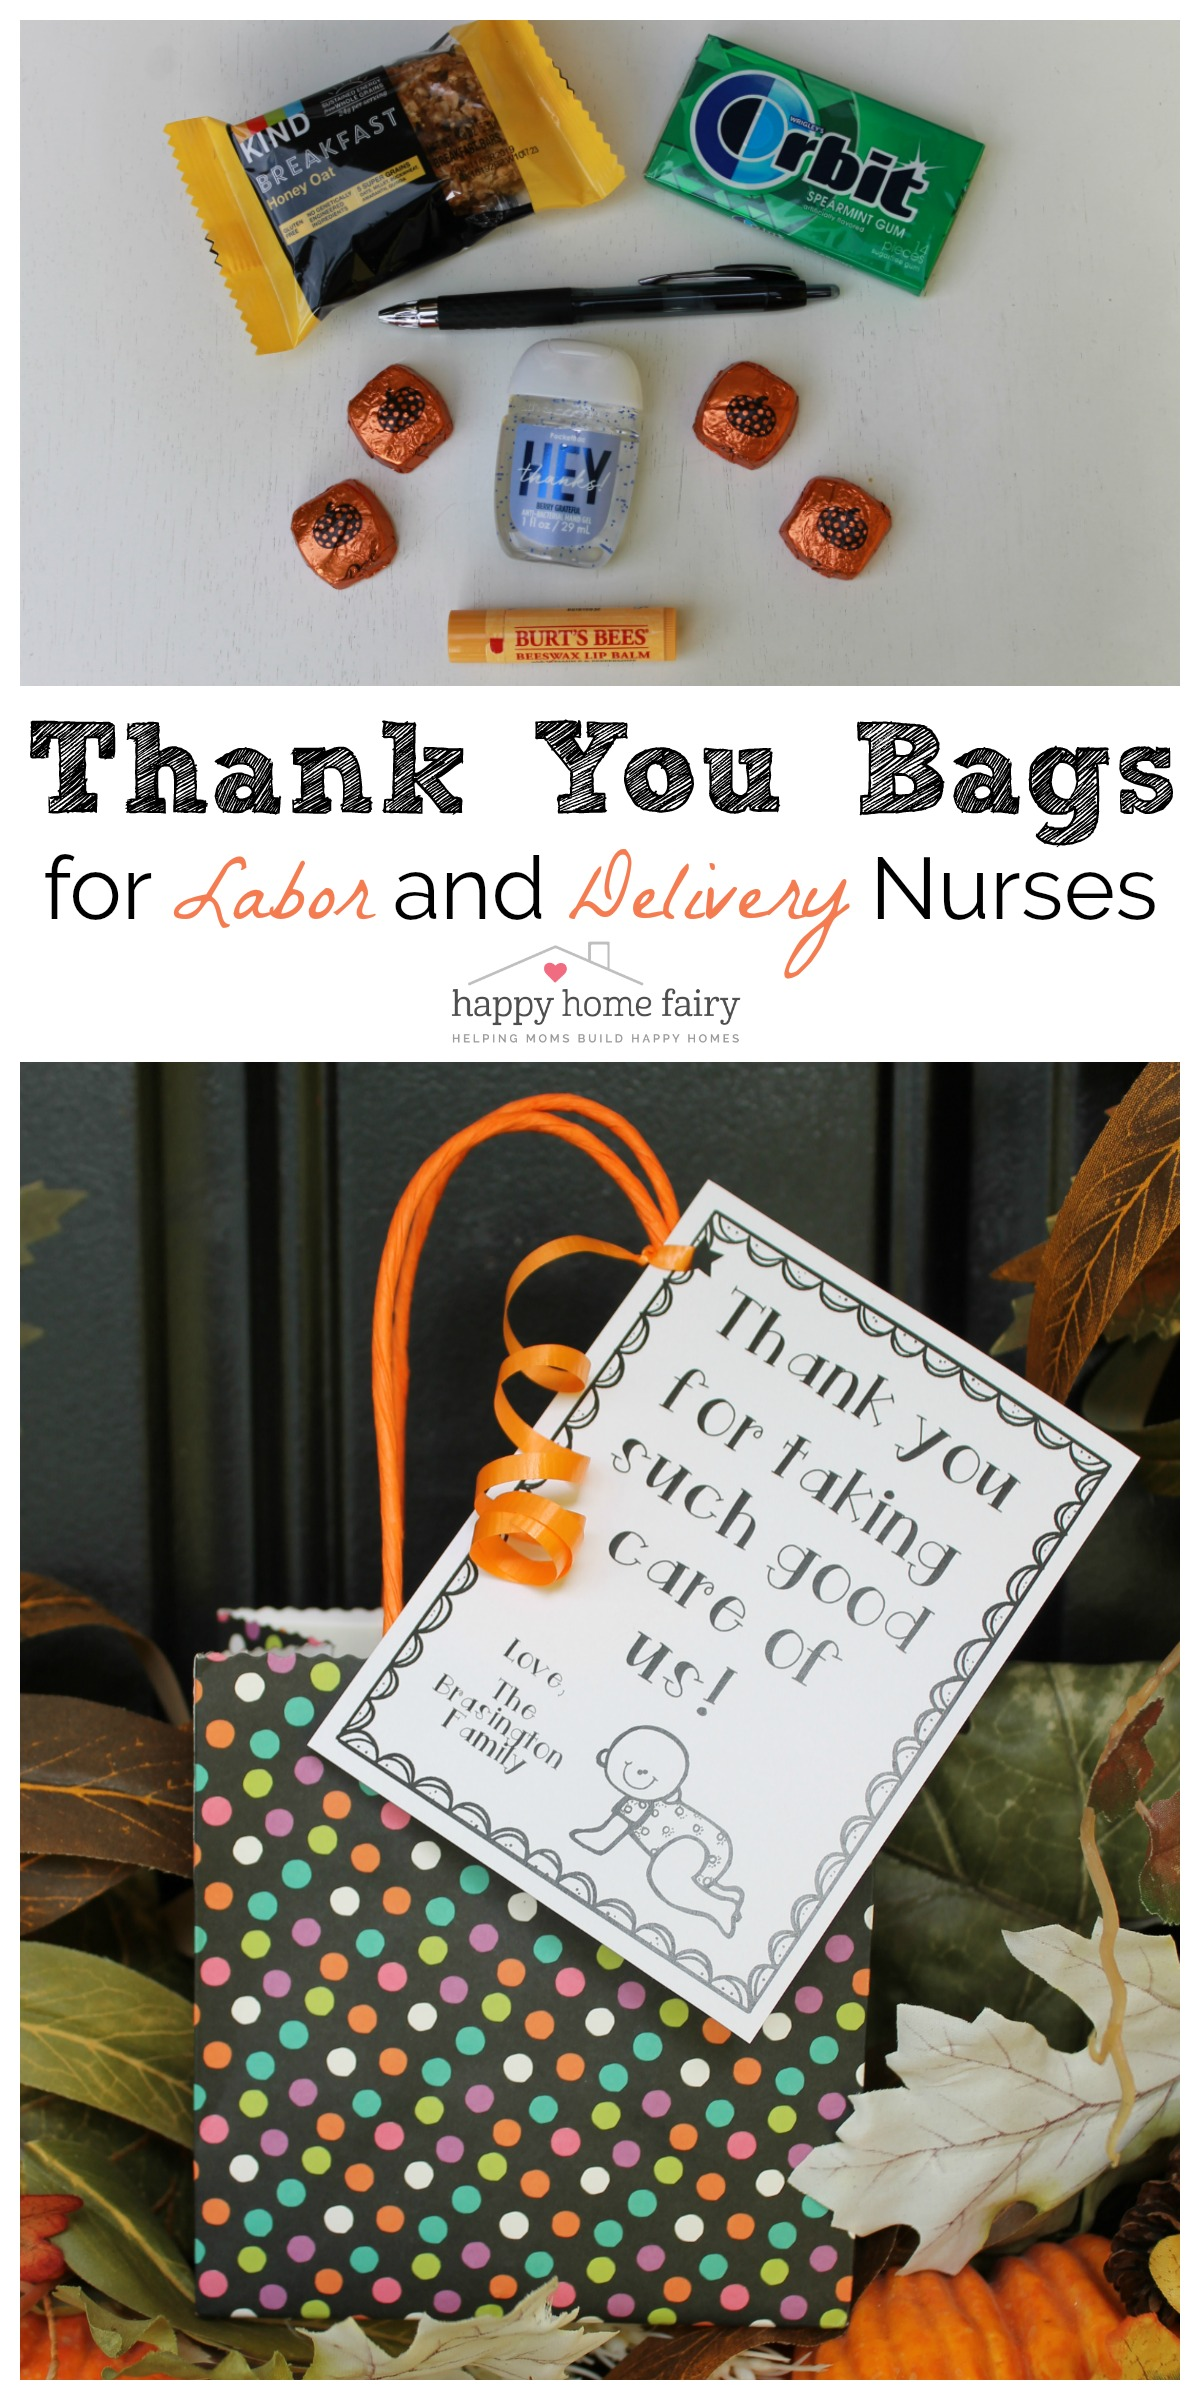 THANK YOU BAGS FOR LABOR AND DELIVERY NURSES